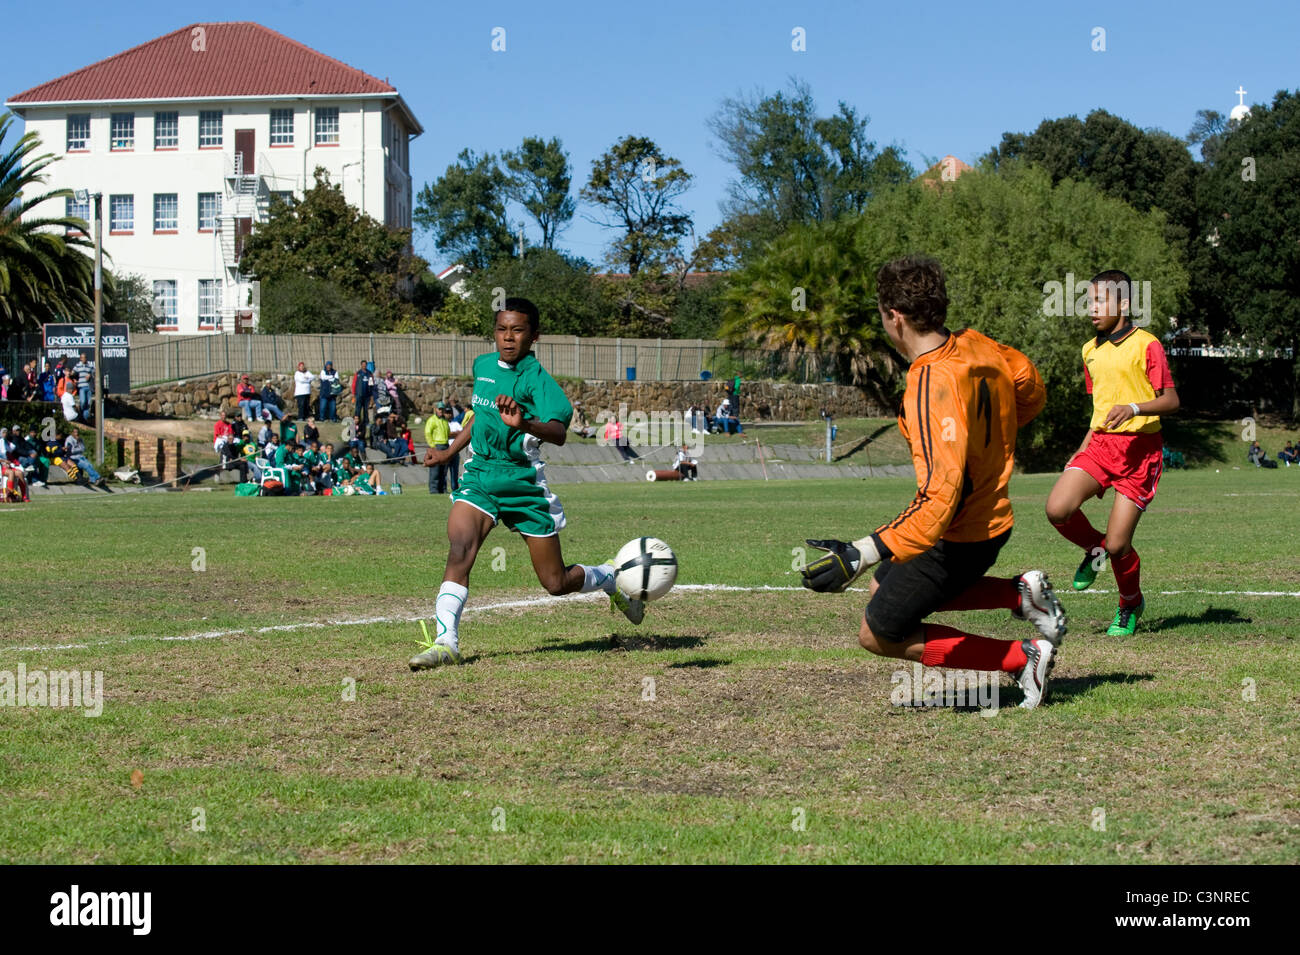 Goalkeeper and striker of an U13 football team in action Cape Town South Africa - Stock Image